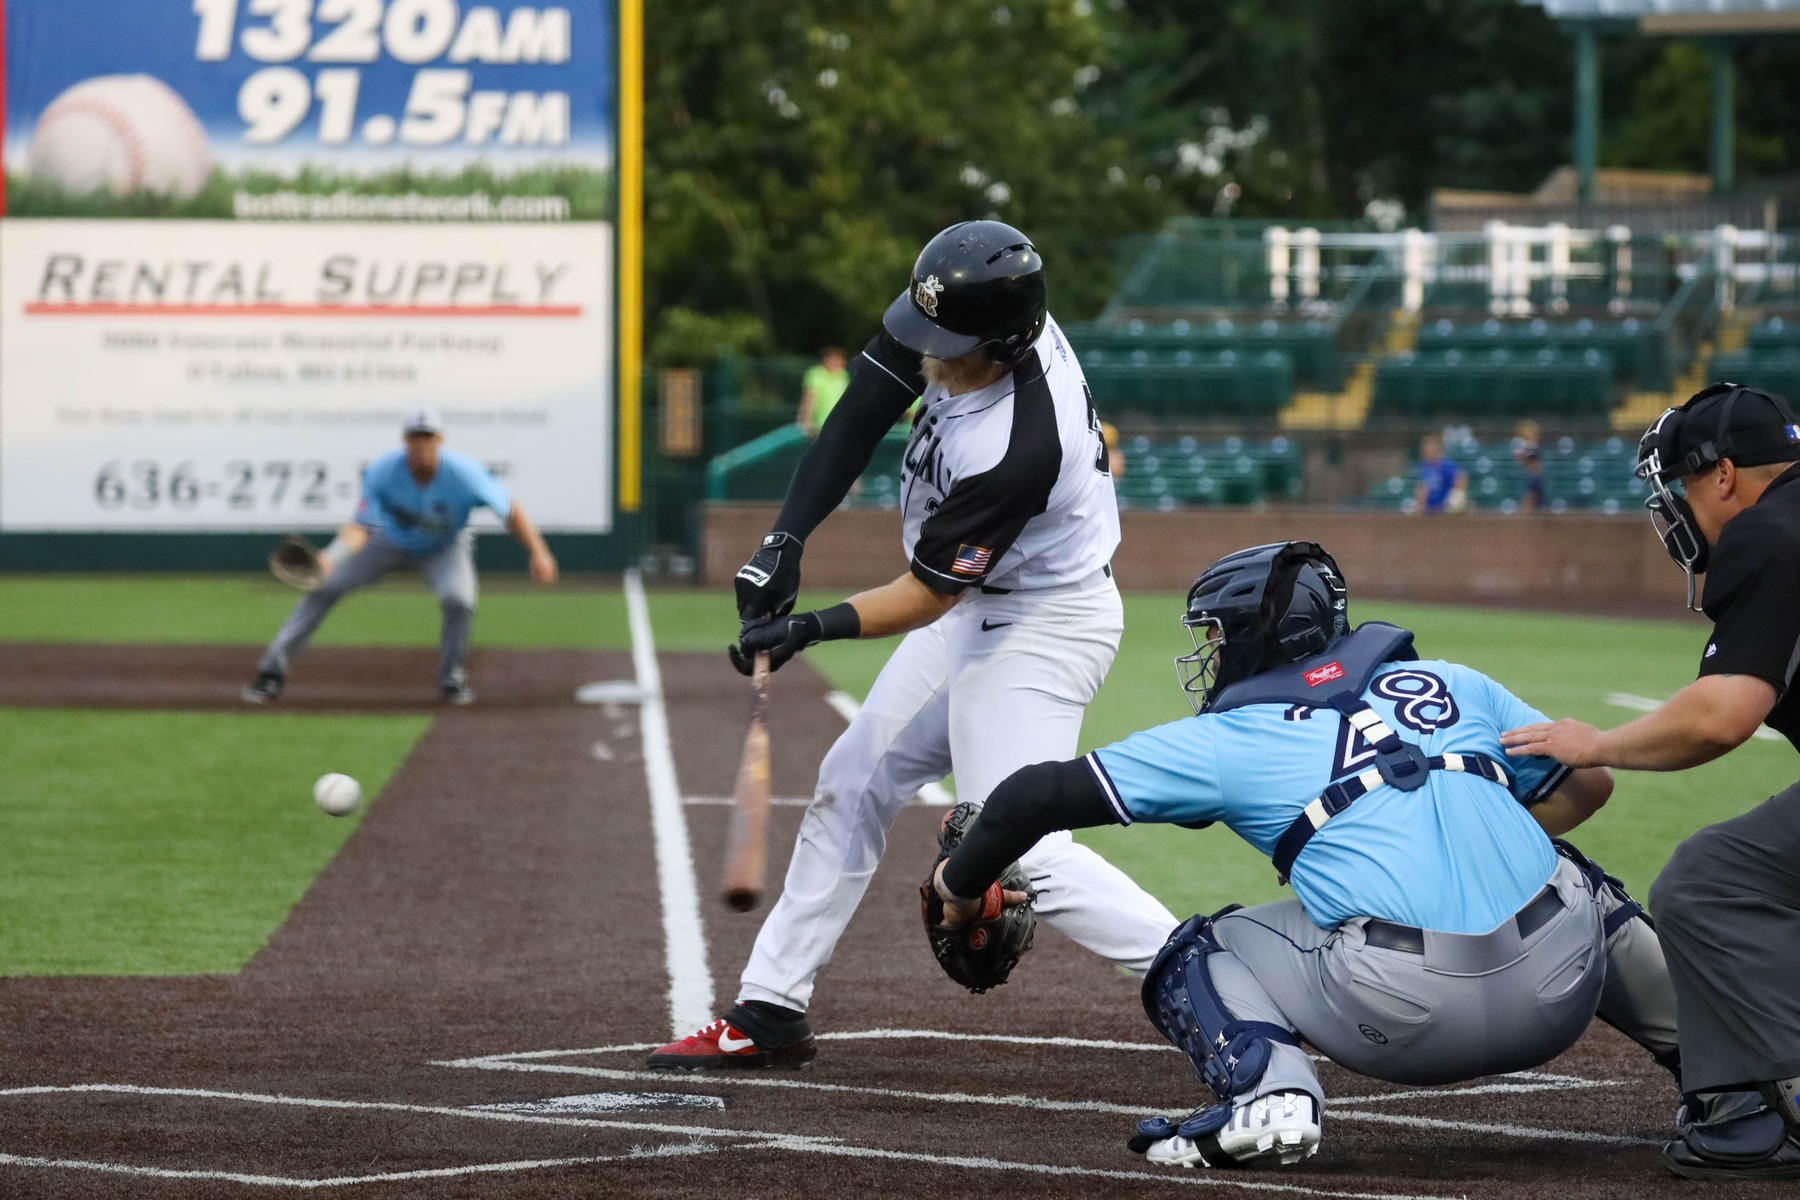 Rascals Blanked By Grizzlies